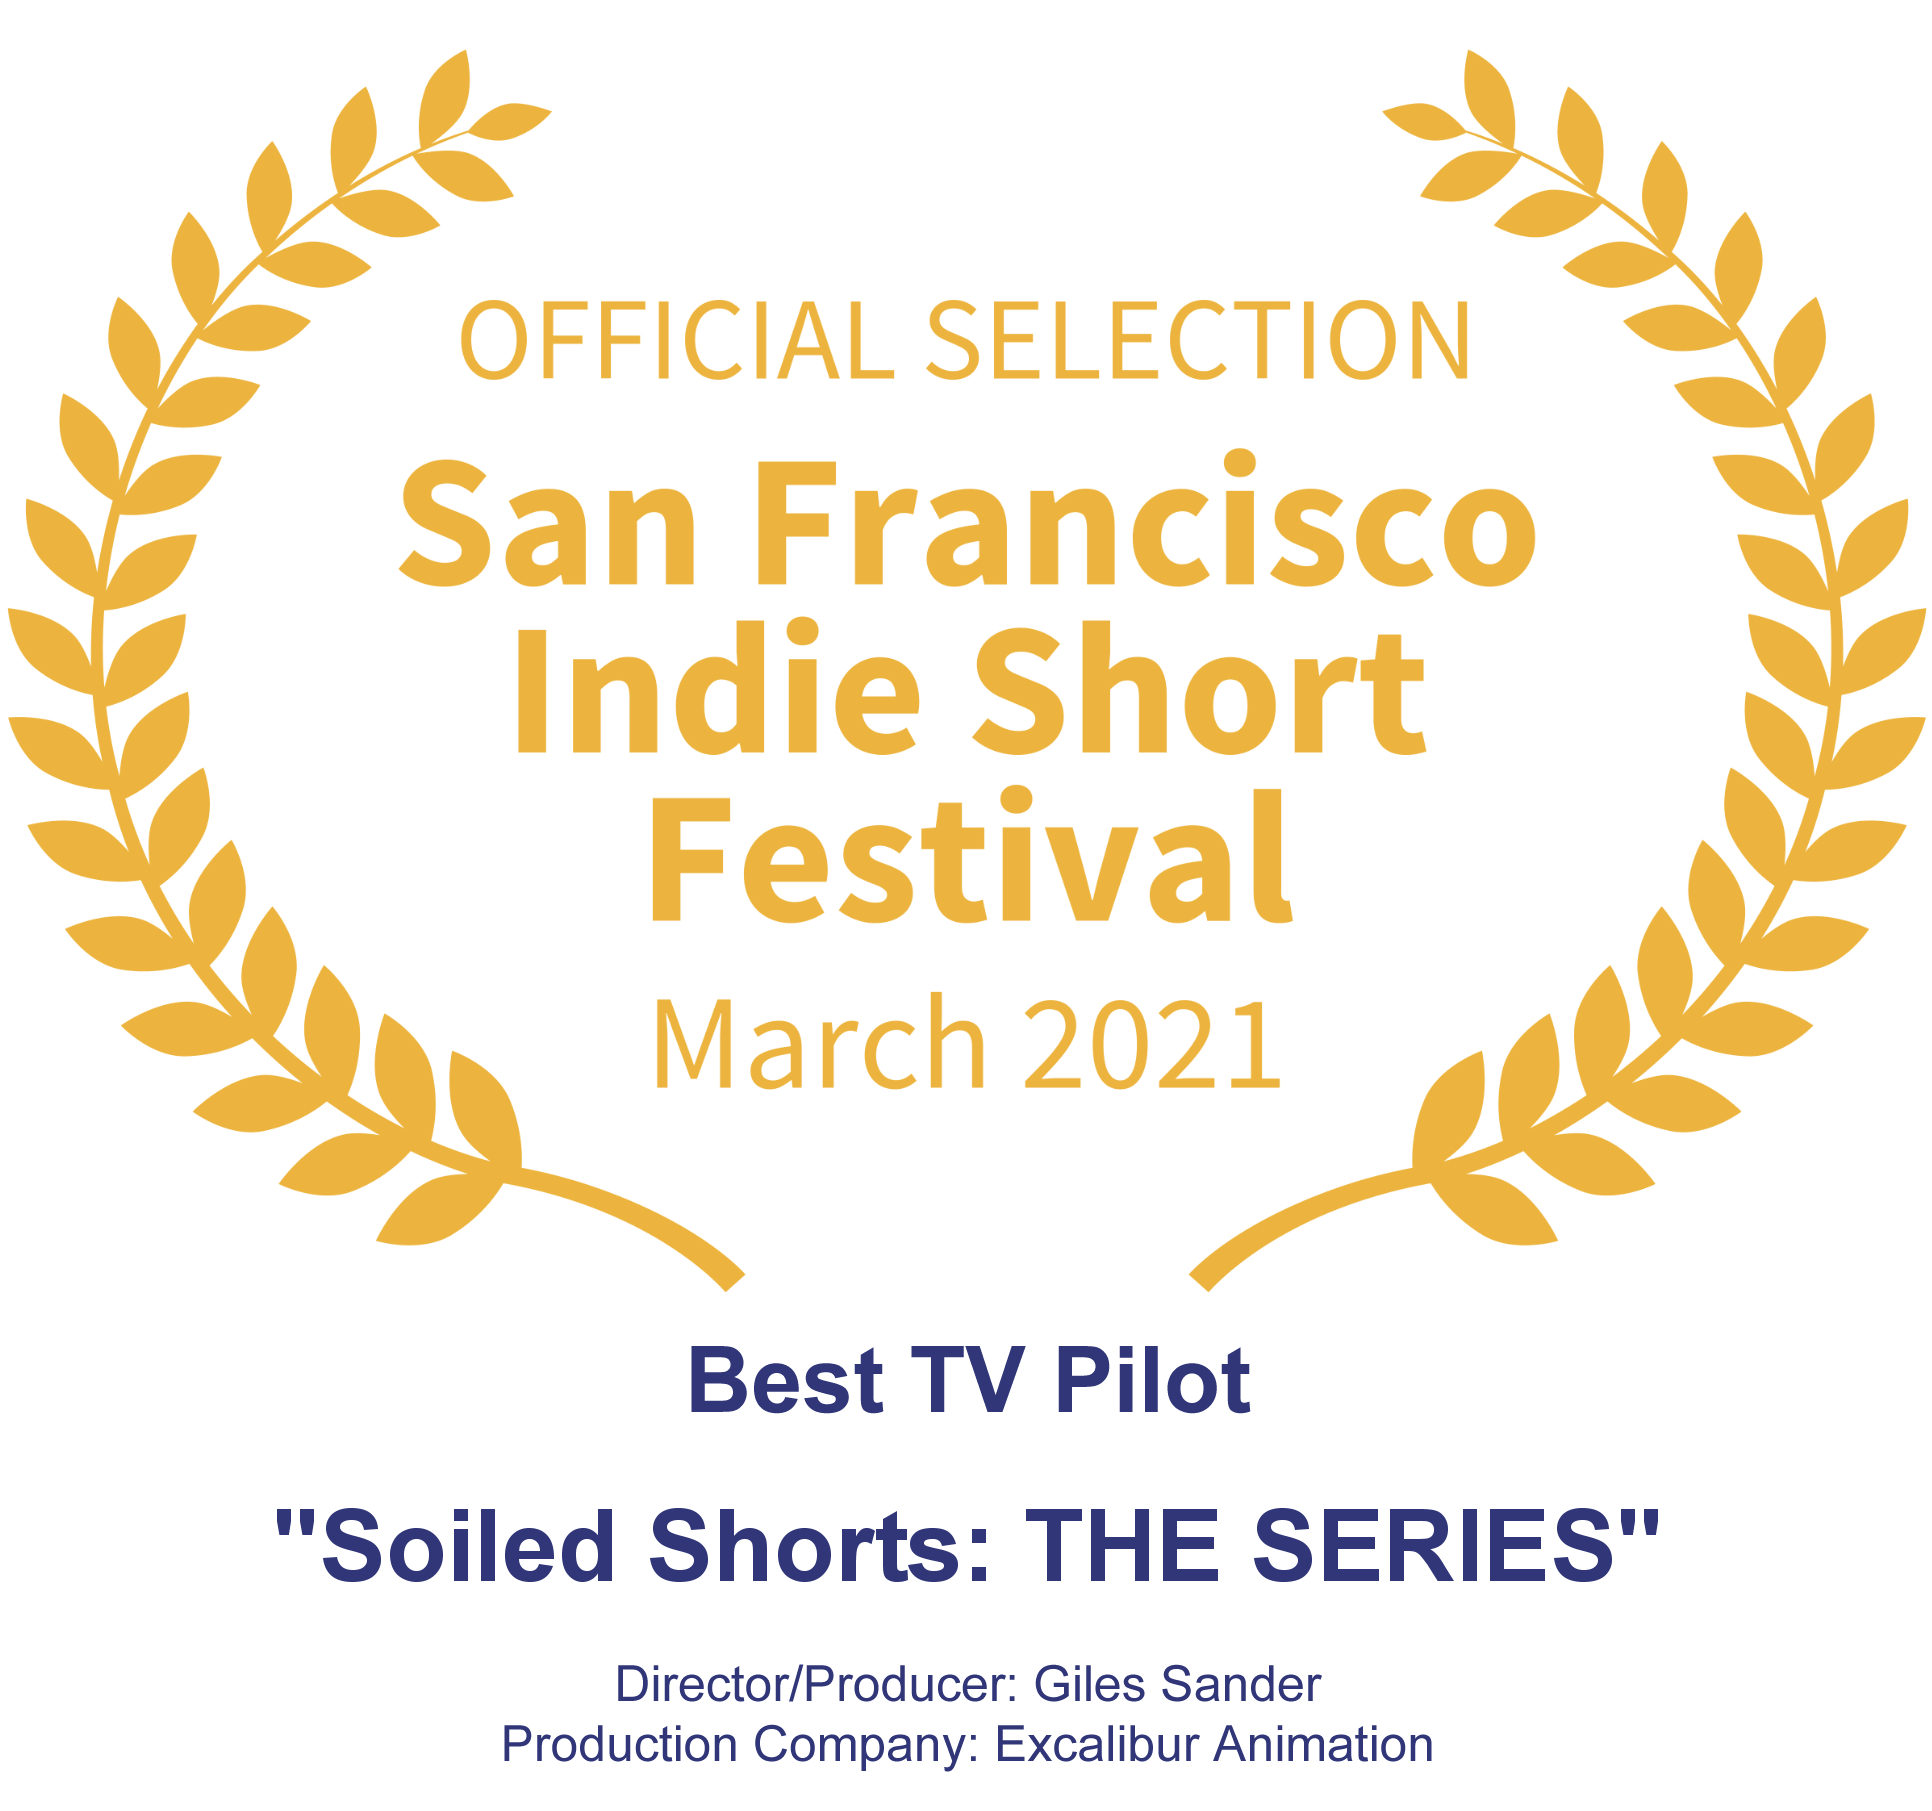 Official Selection - San Francisco Indie Short Festival March 2021